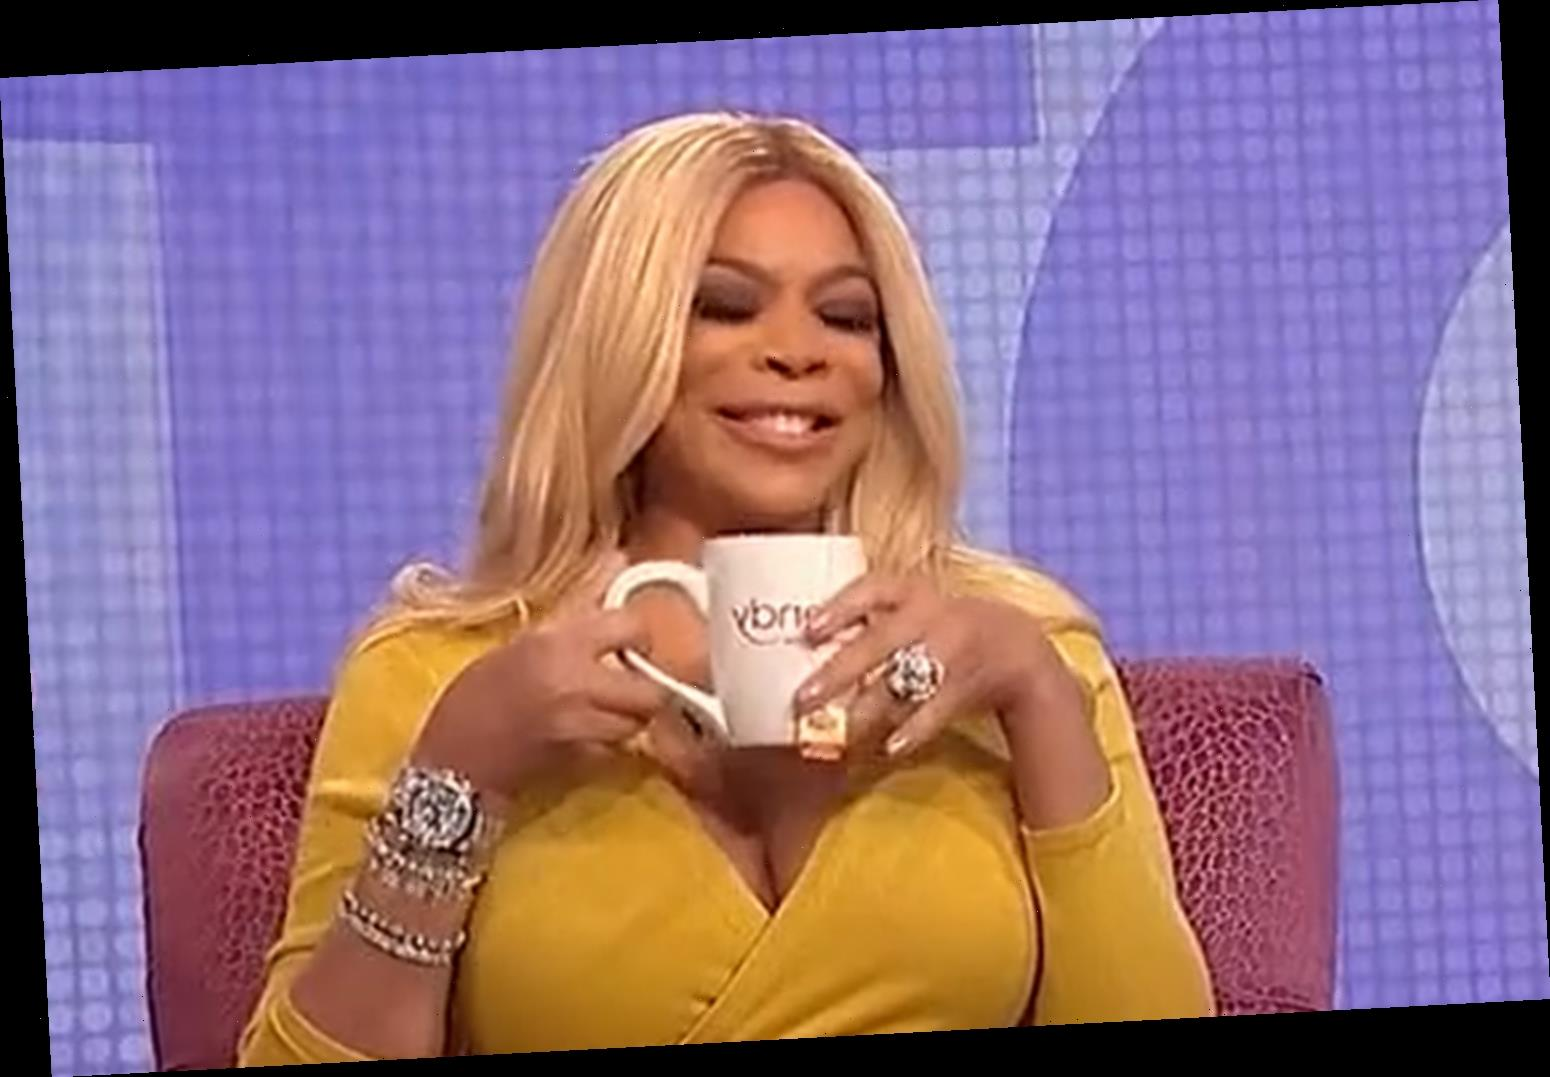 How can I watch Wendy Williams: The Movie?